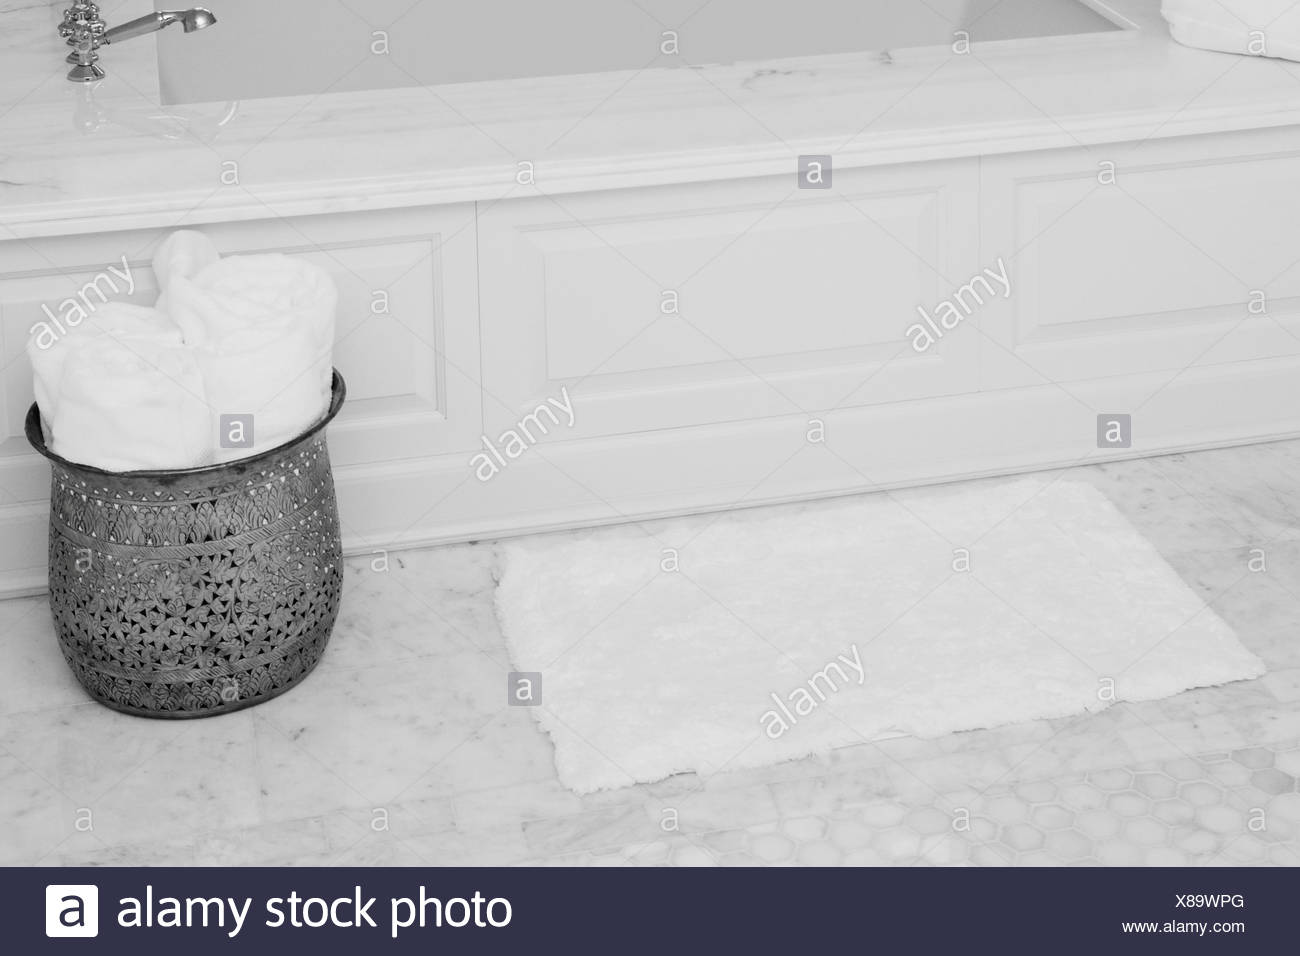 Towels in a container near the bathtub - Stock Image